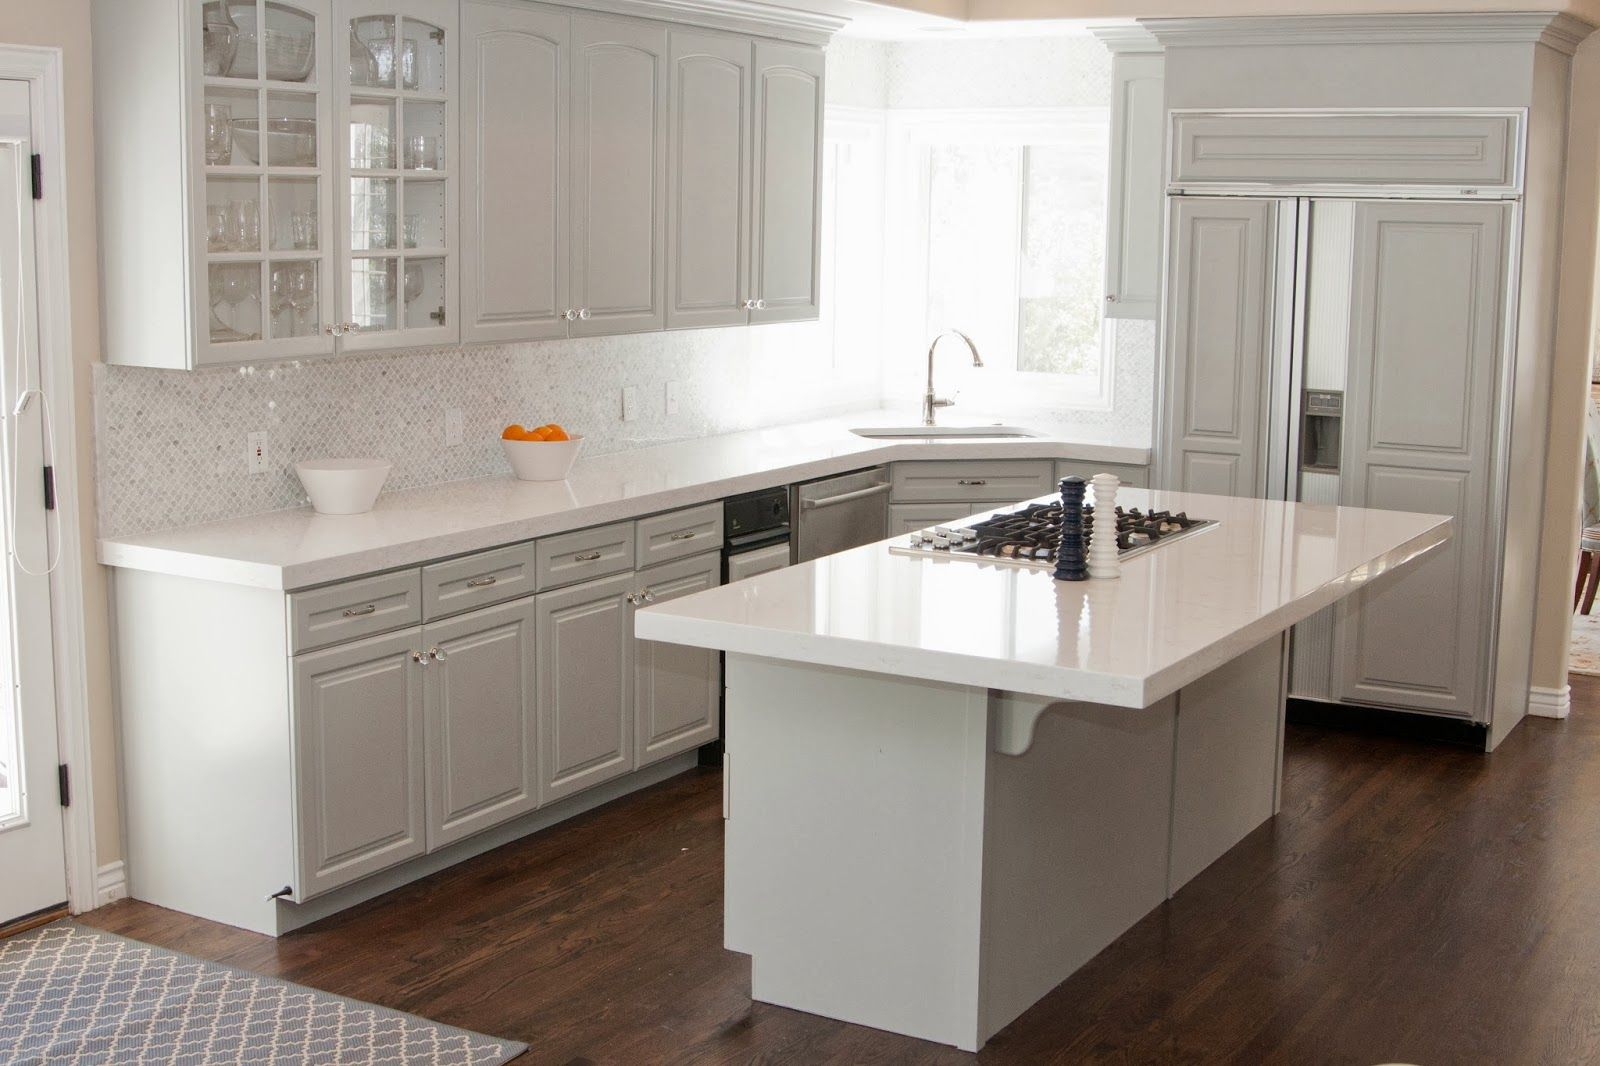 Countertop ideas for white cabinets google search for Kitchen cabinets and countertops ideas